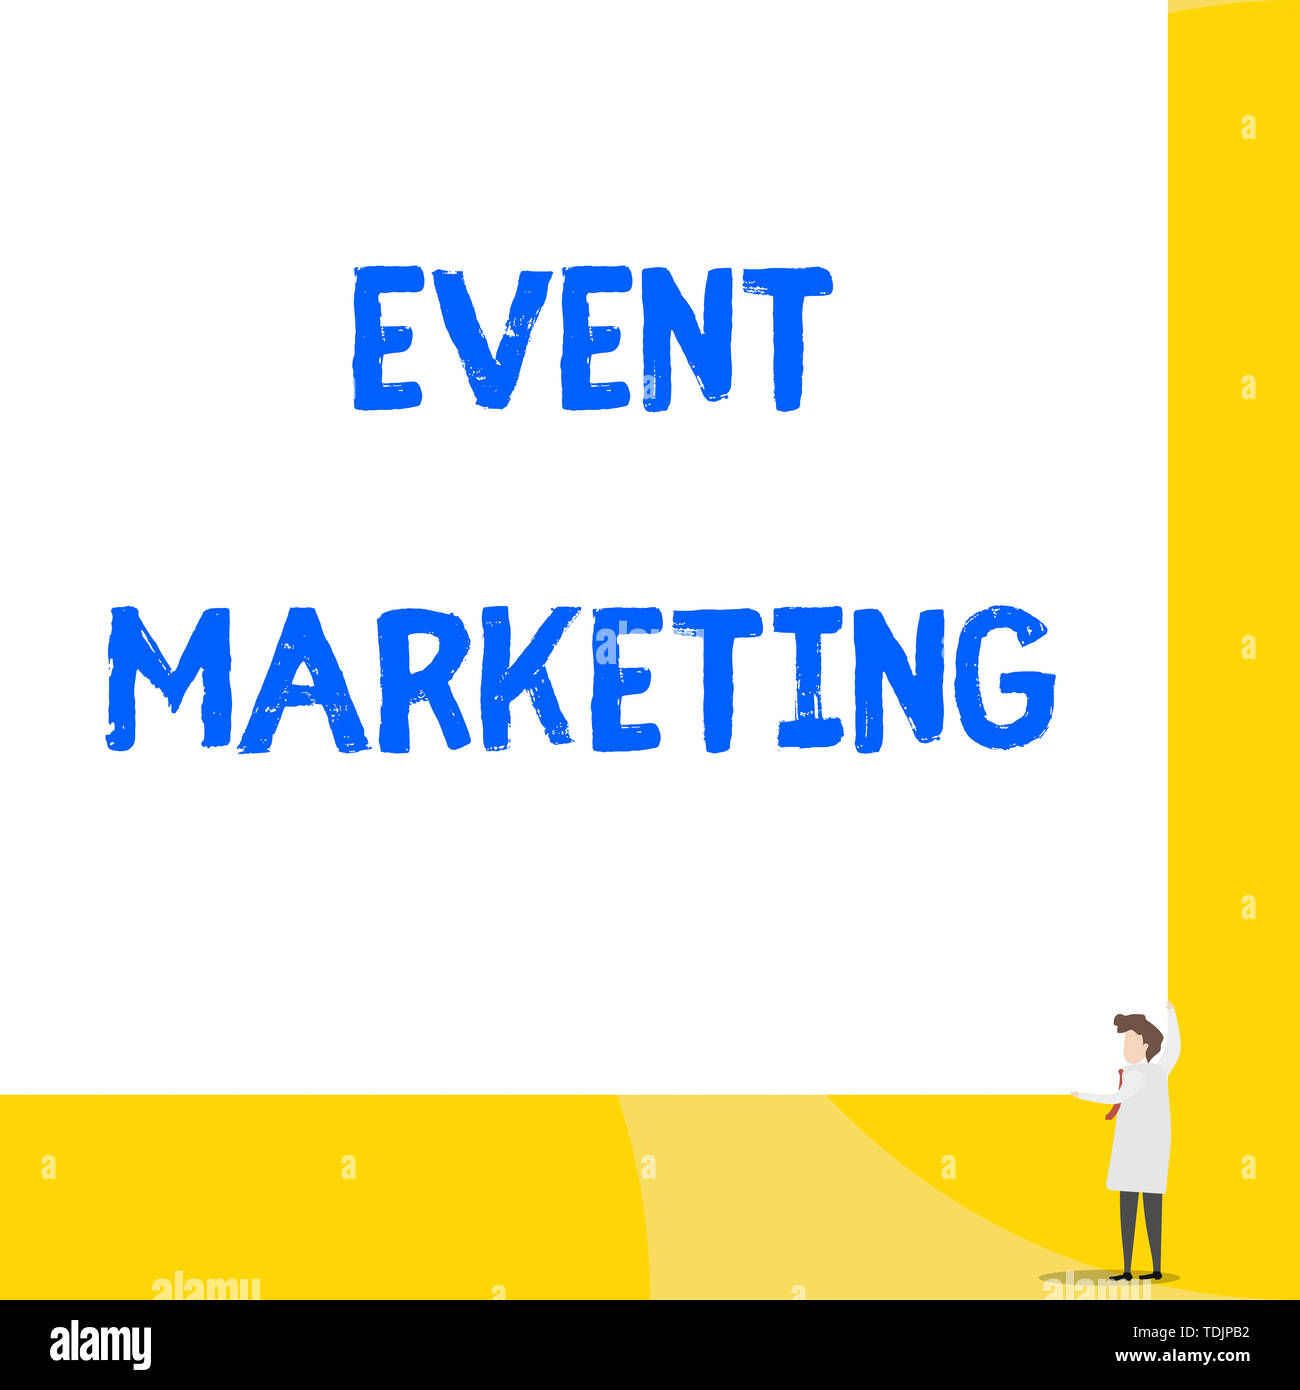 Writing note showing Event Marketing. Business concept for describes process of developing display to promote product Young woman holding two hands ri - Stock Image